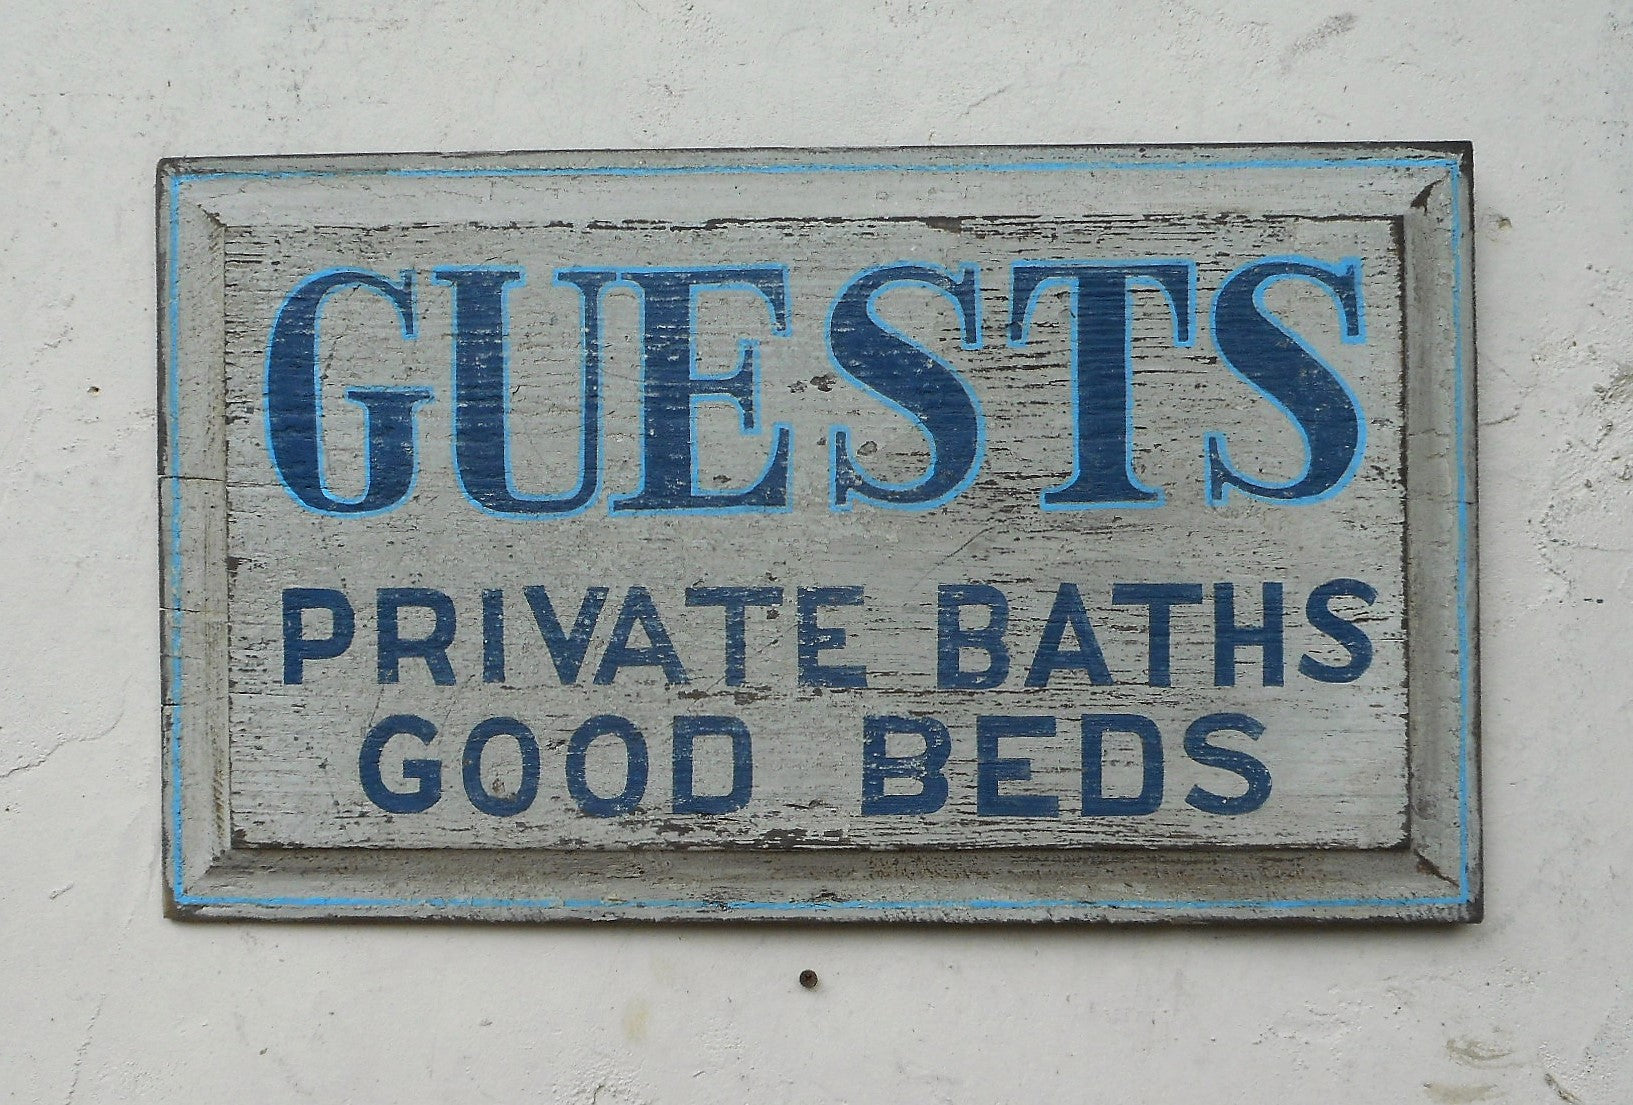 Guests -Private Baths Good Beds